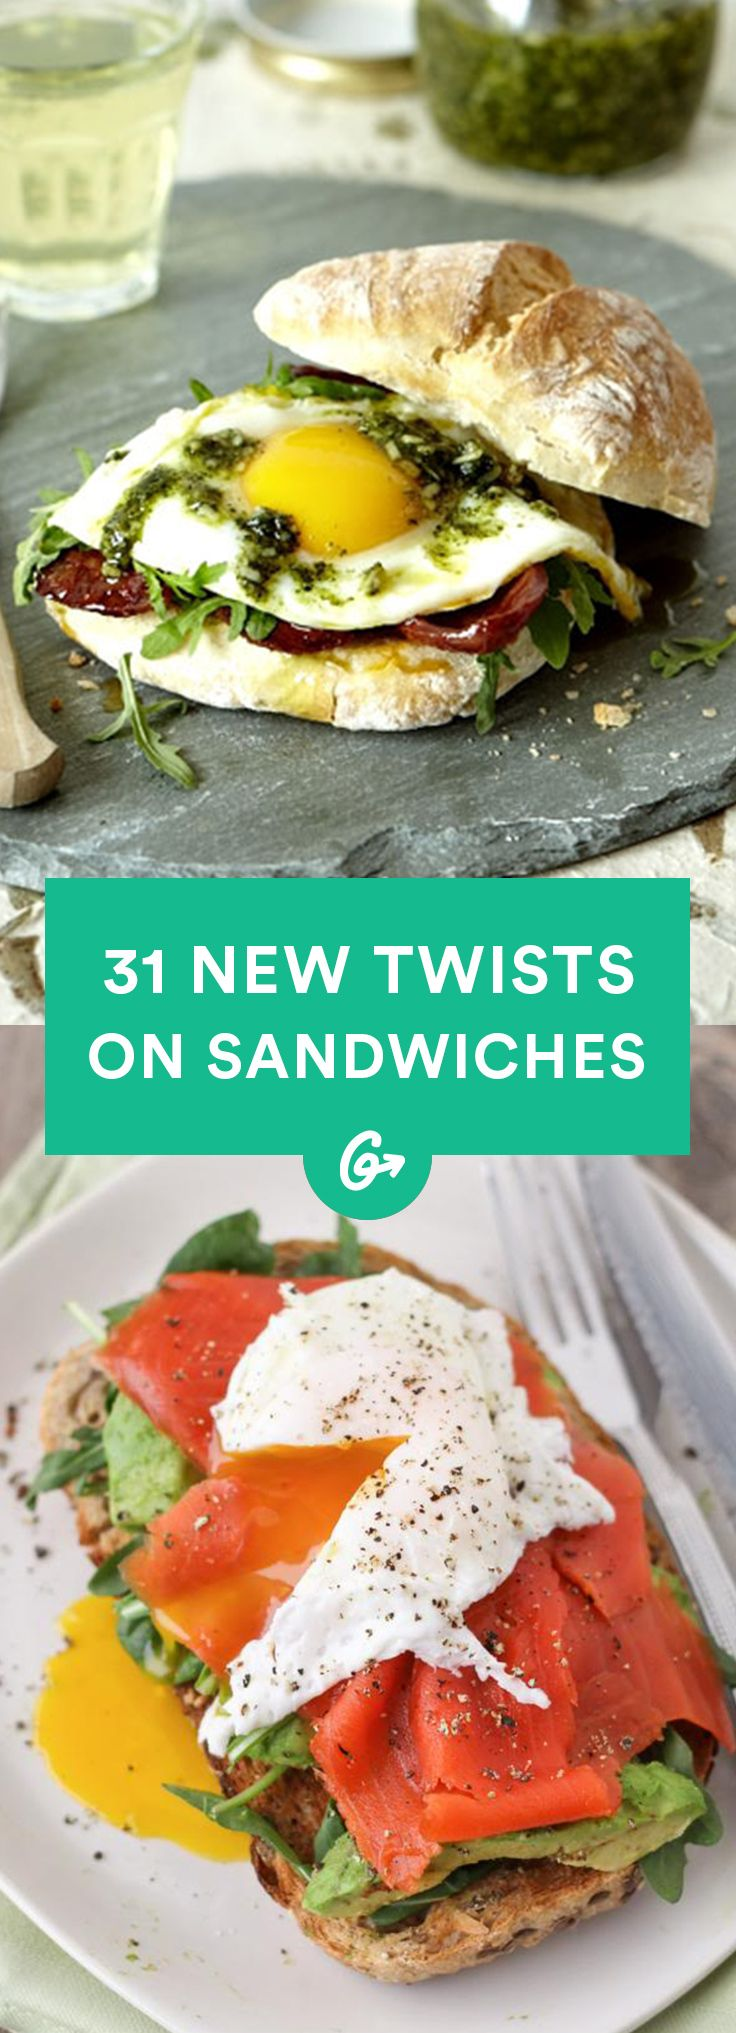 From collard wraps to gooey grilled cheese to breakfast and dessert versions, these healthy sandwiches will up your lunch game #recipes #healthy #sandwich http://greatist.com/eat/new-healthy-sandwich-recipes